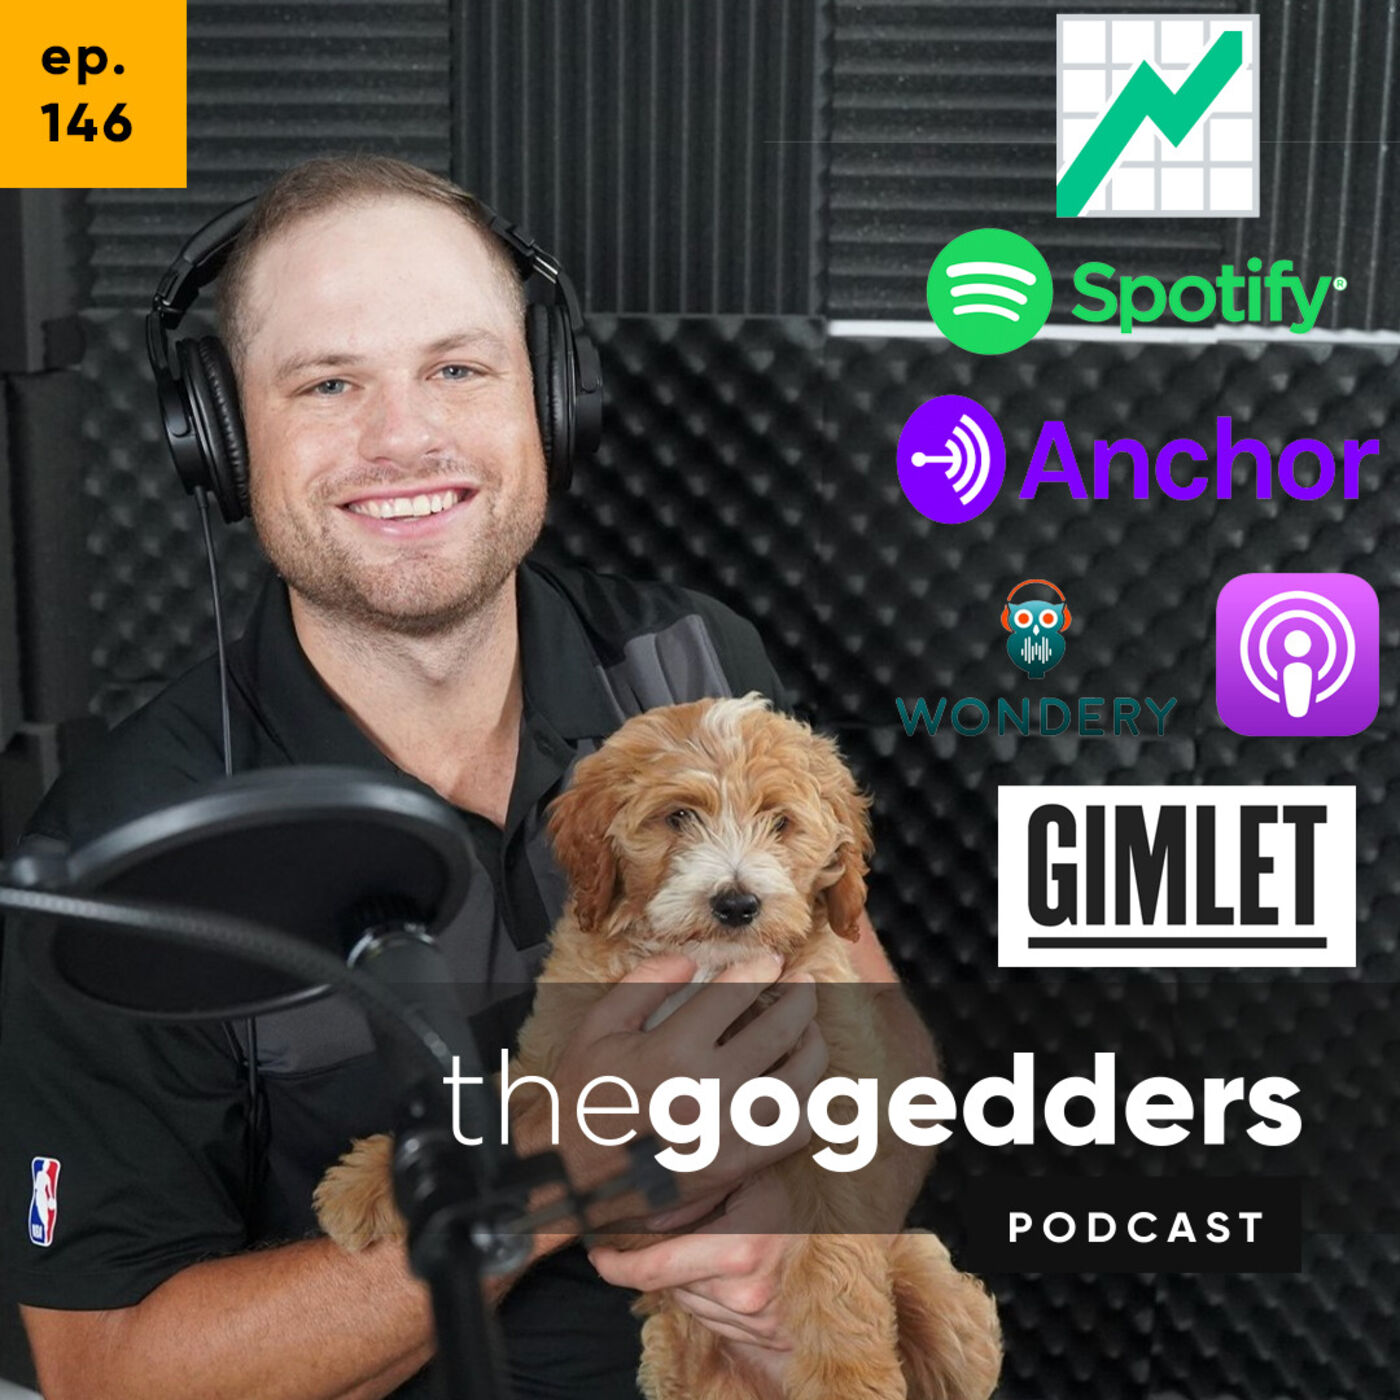 The Booming State of Podcasting 2021: Is it too late to get in the game?  Platform growth, acquisitions, how to start a podcast, 5 tactics to monetize a podcast today and more!